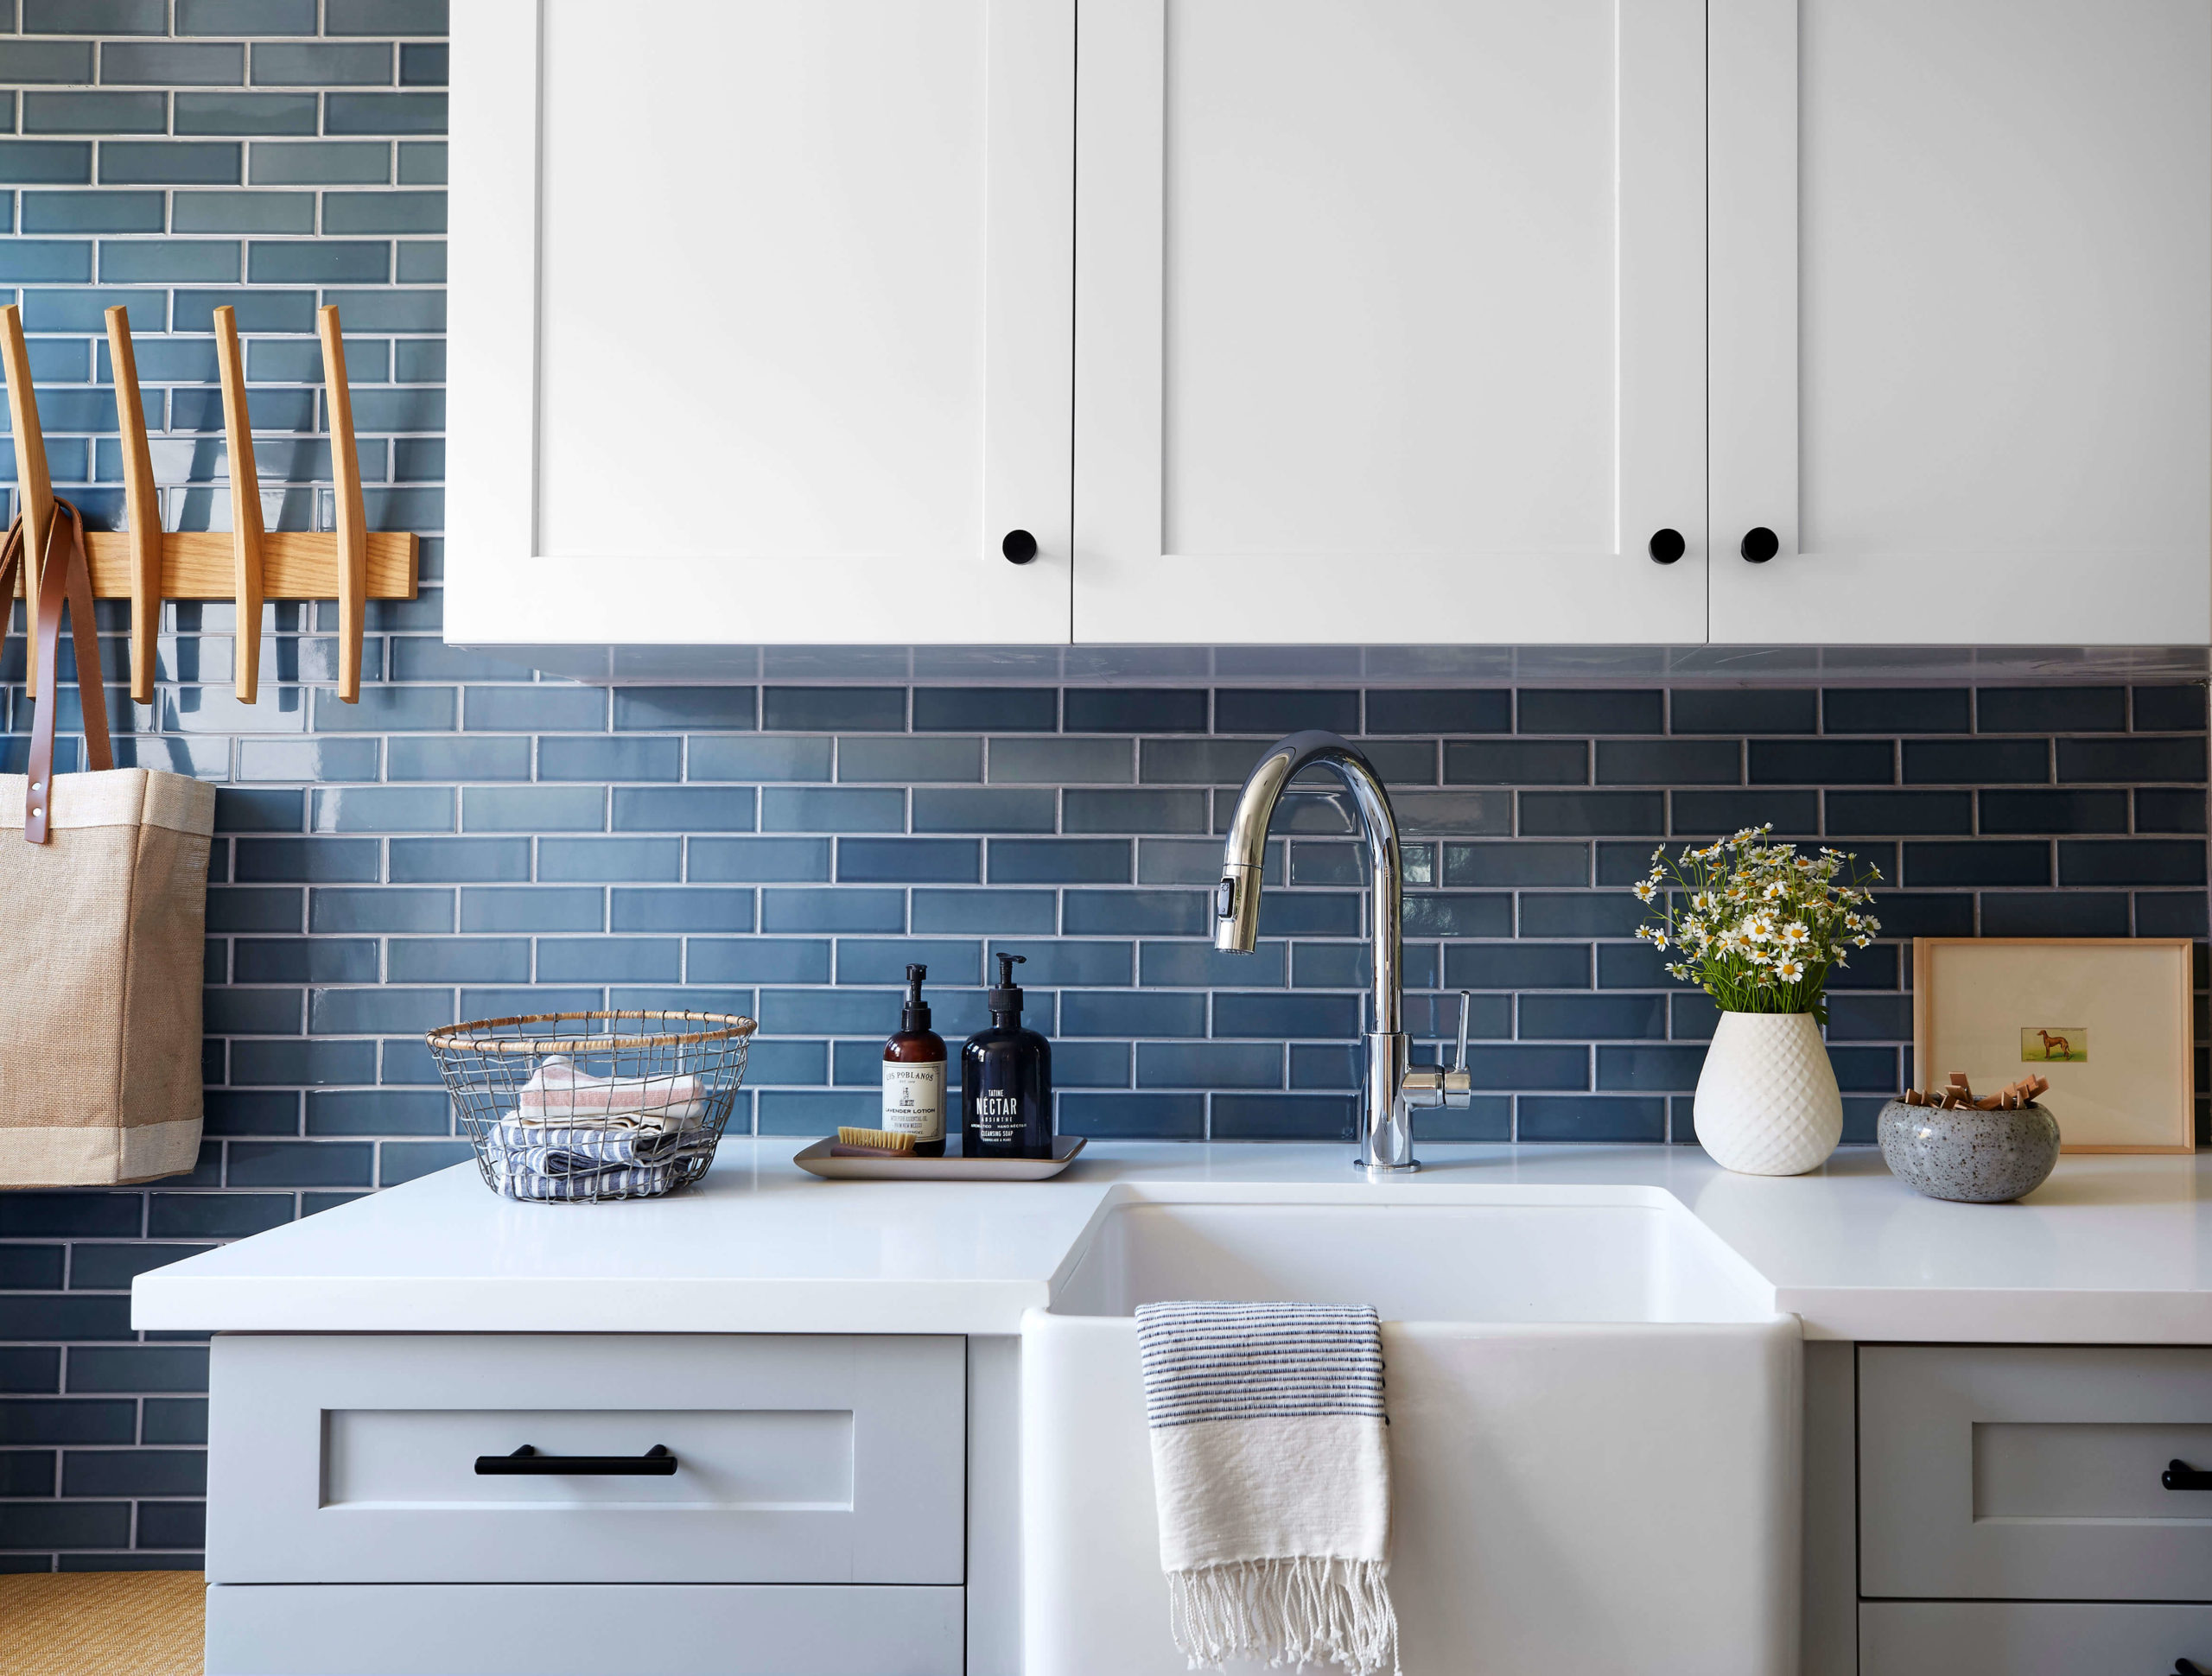 Laundry room blue tile backsplash interior design by Ginny Macdonald Design